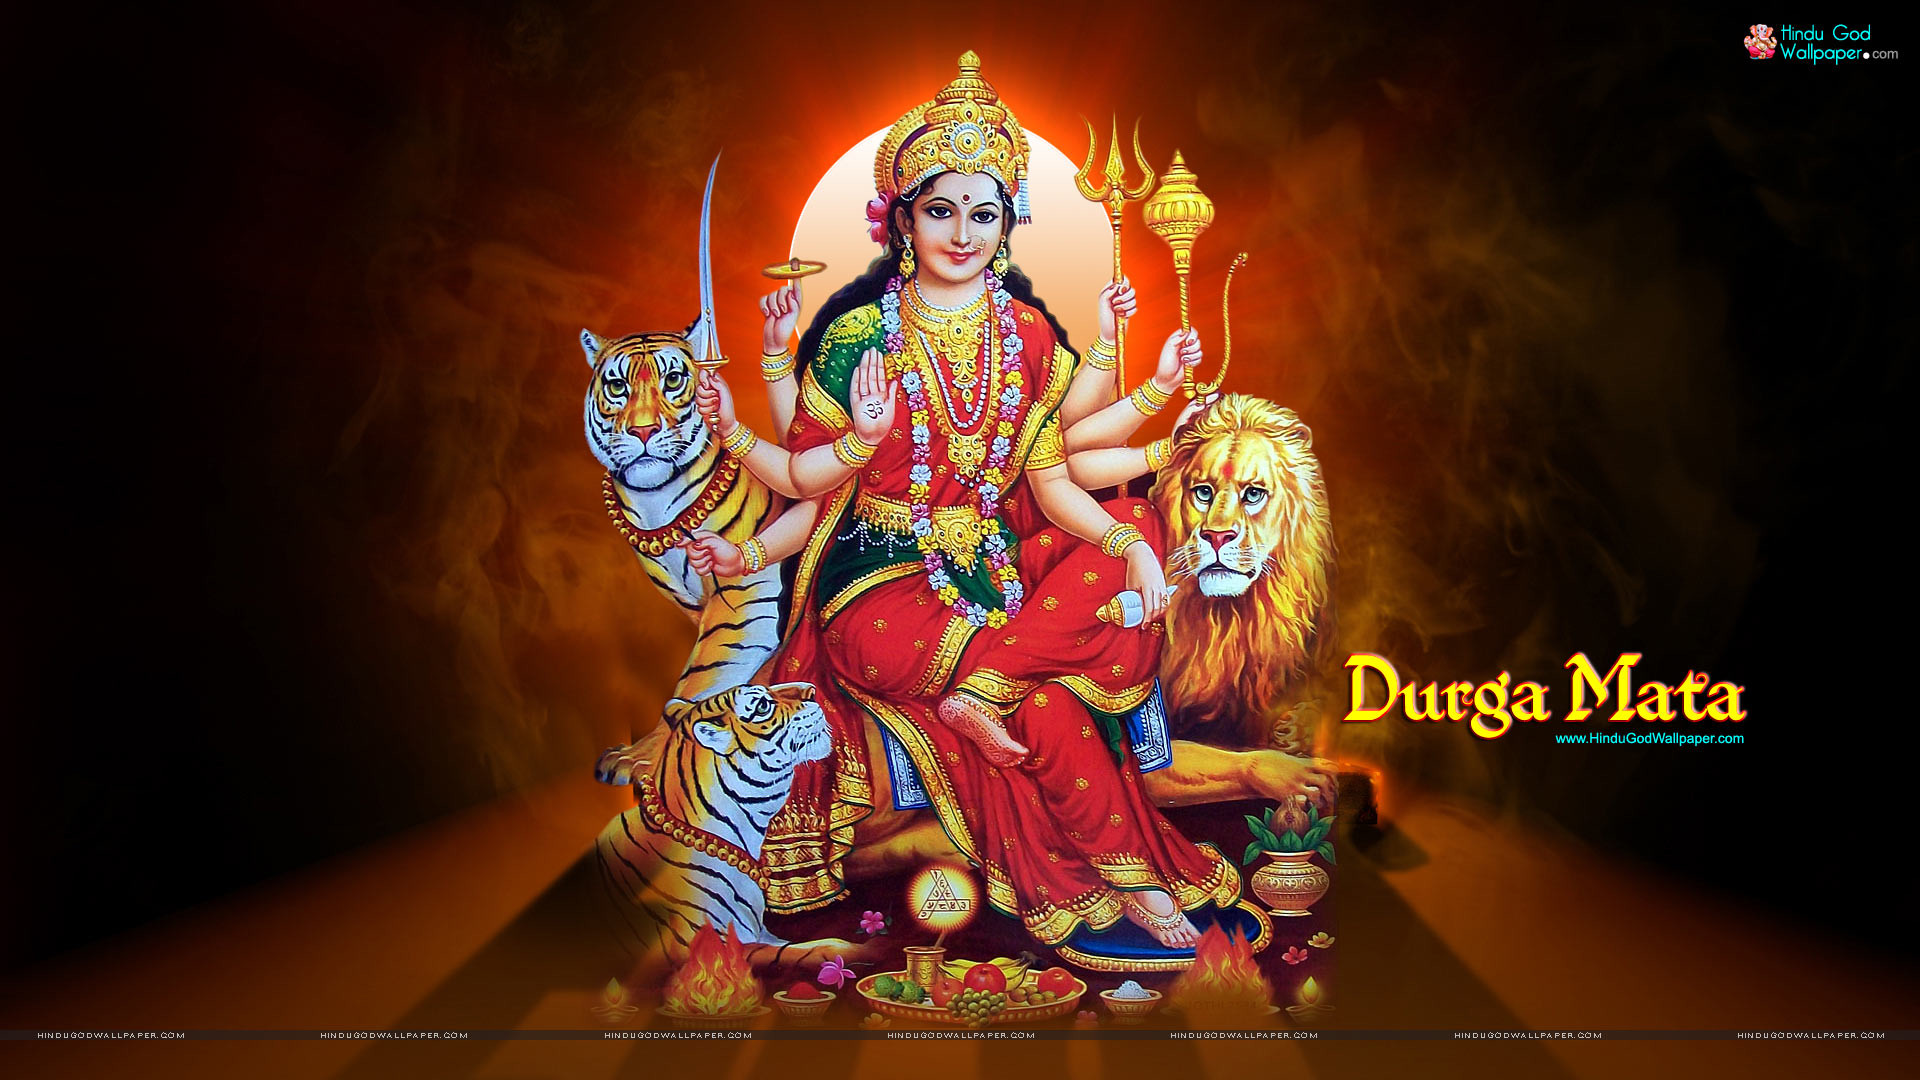 1920x1080 goddess durga hd widescreen wallpaper download